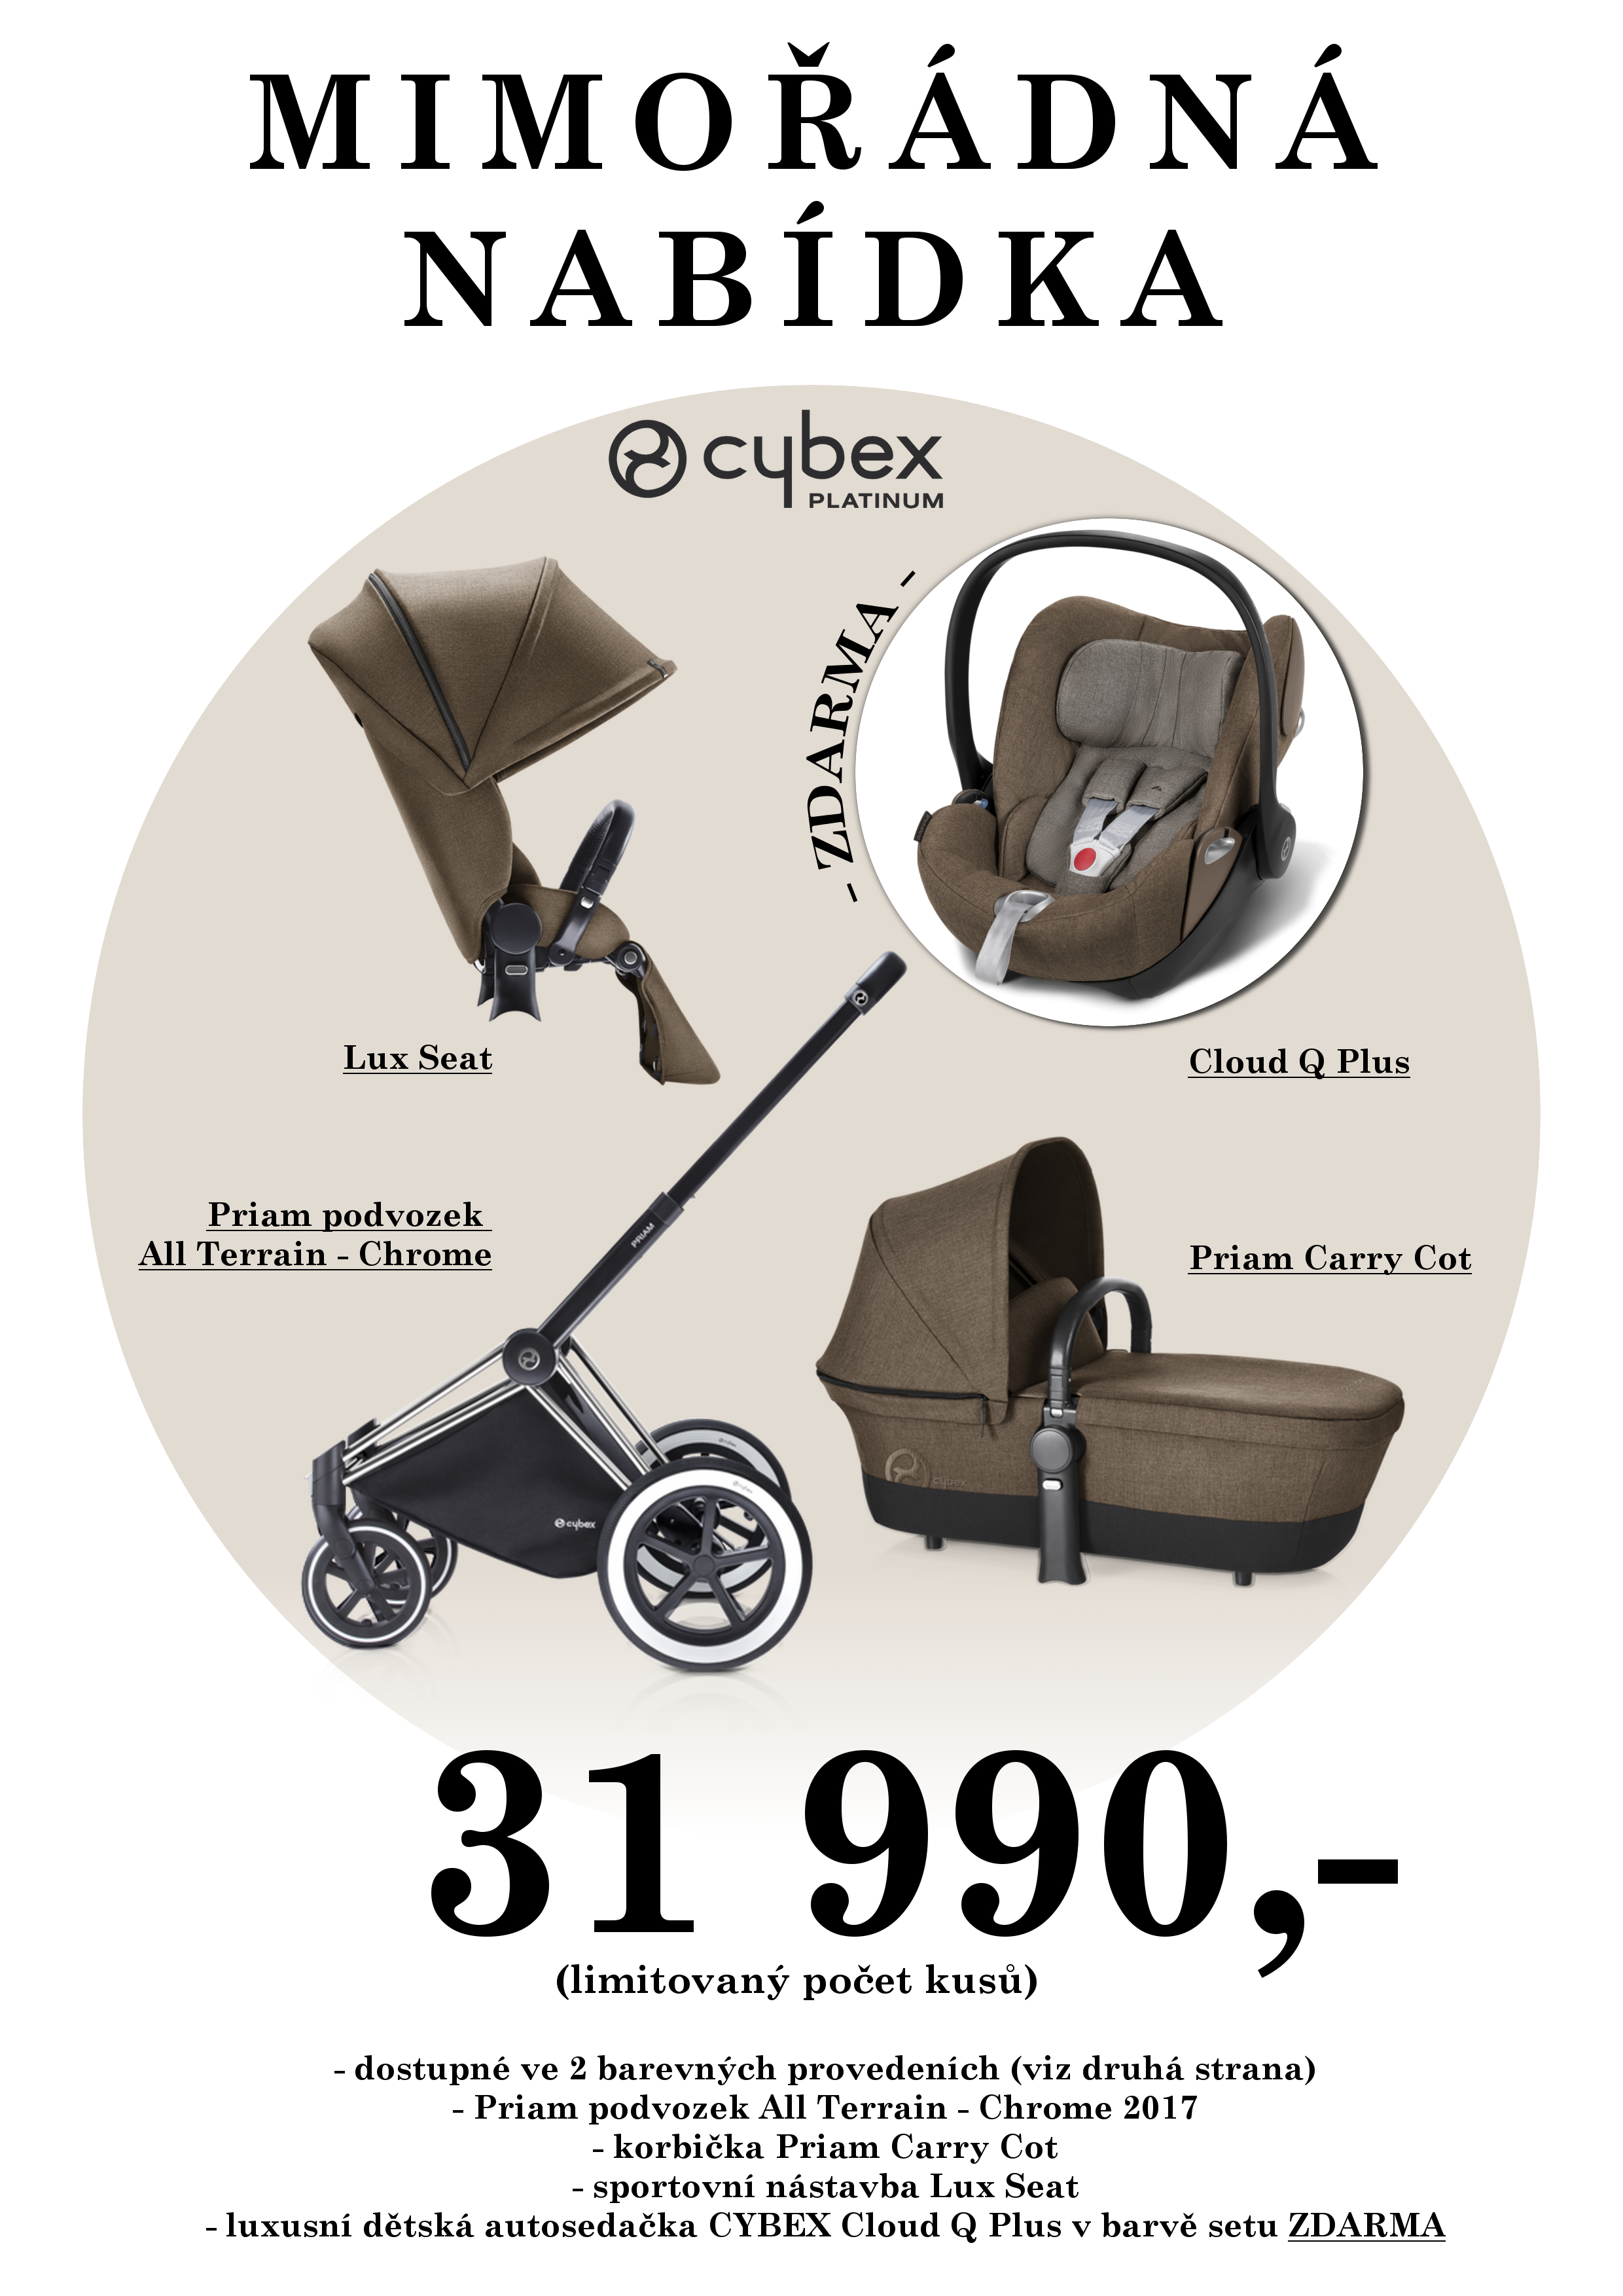 20161123-cybex-priam-set-newsletter-frontside.jpg